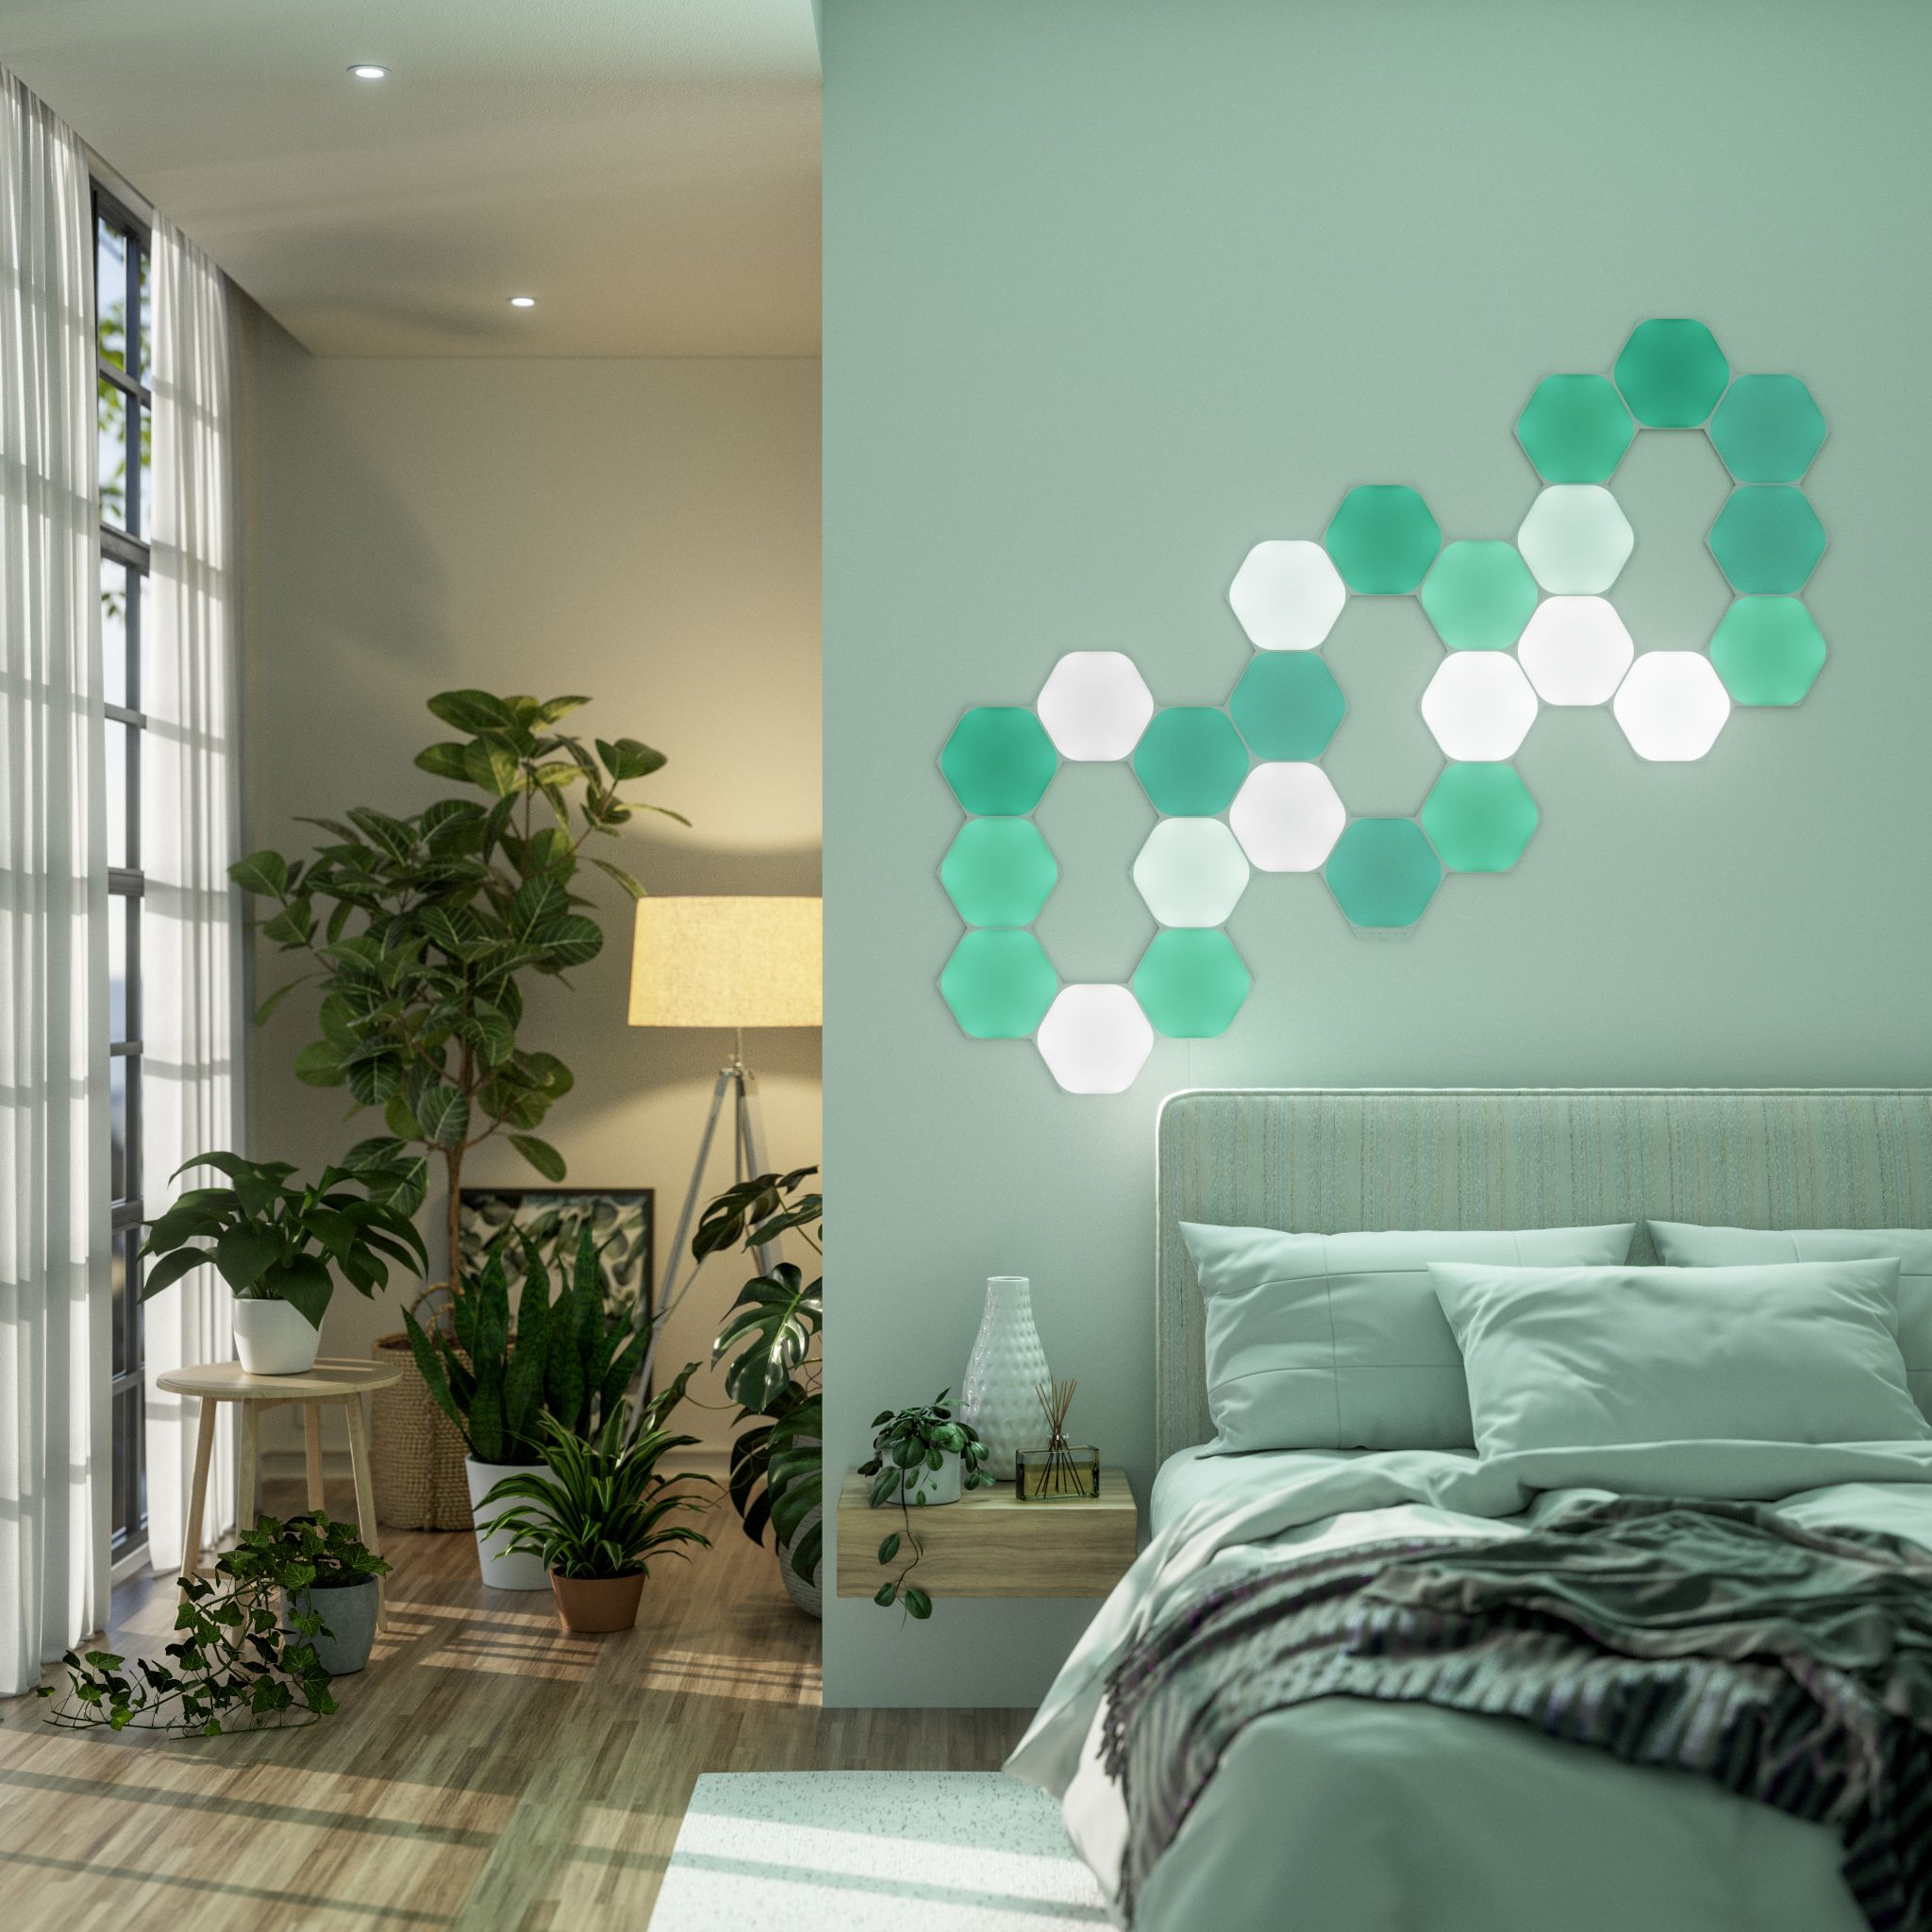 RGB color changing smart light features